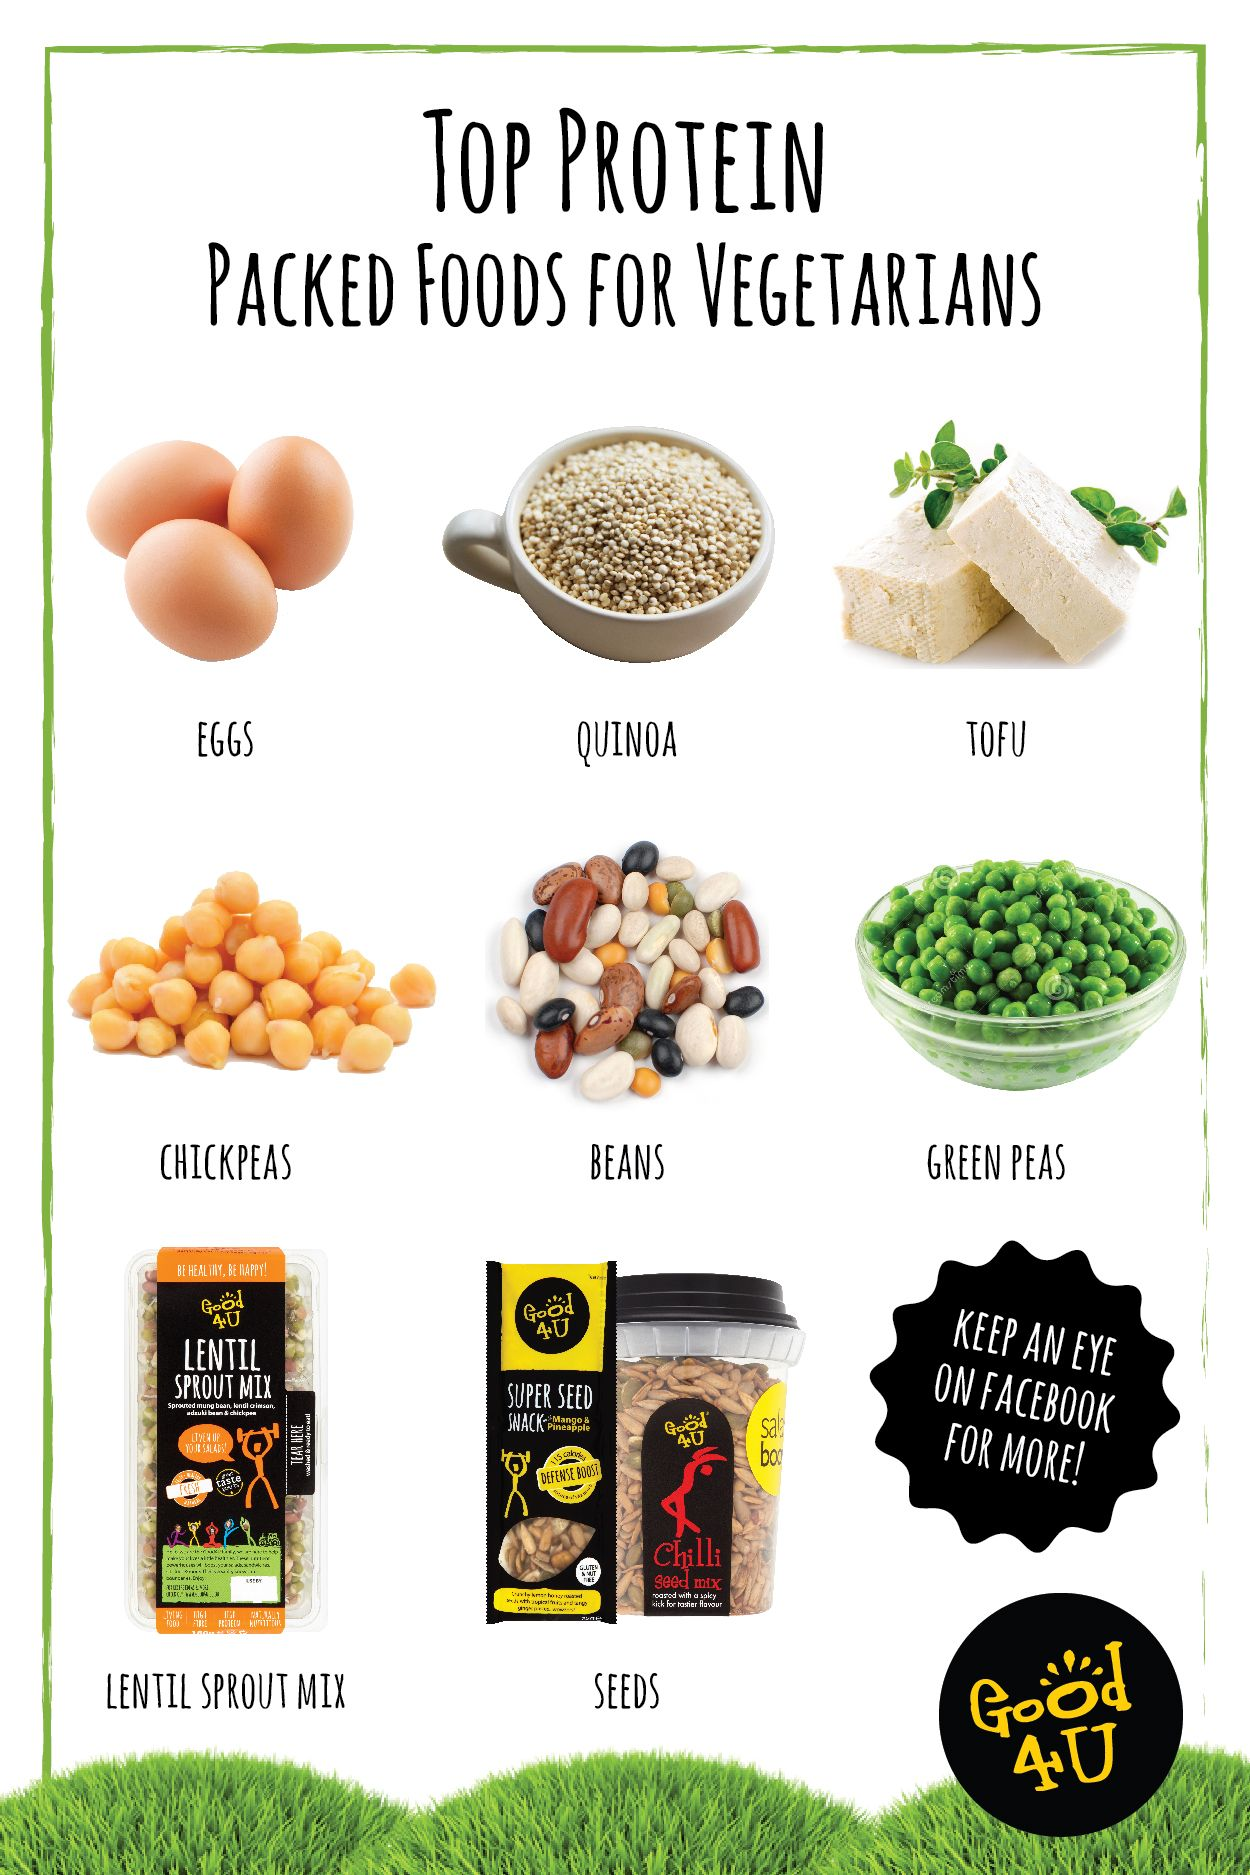 Top Protein Packed Foods for Vegetarians Source of